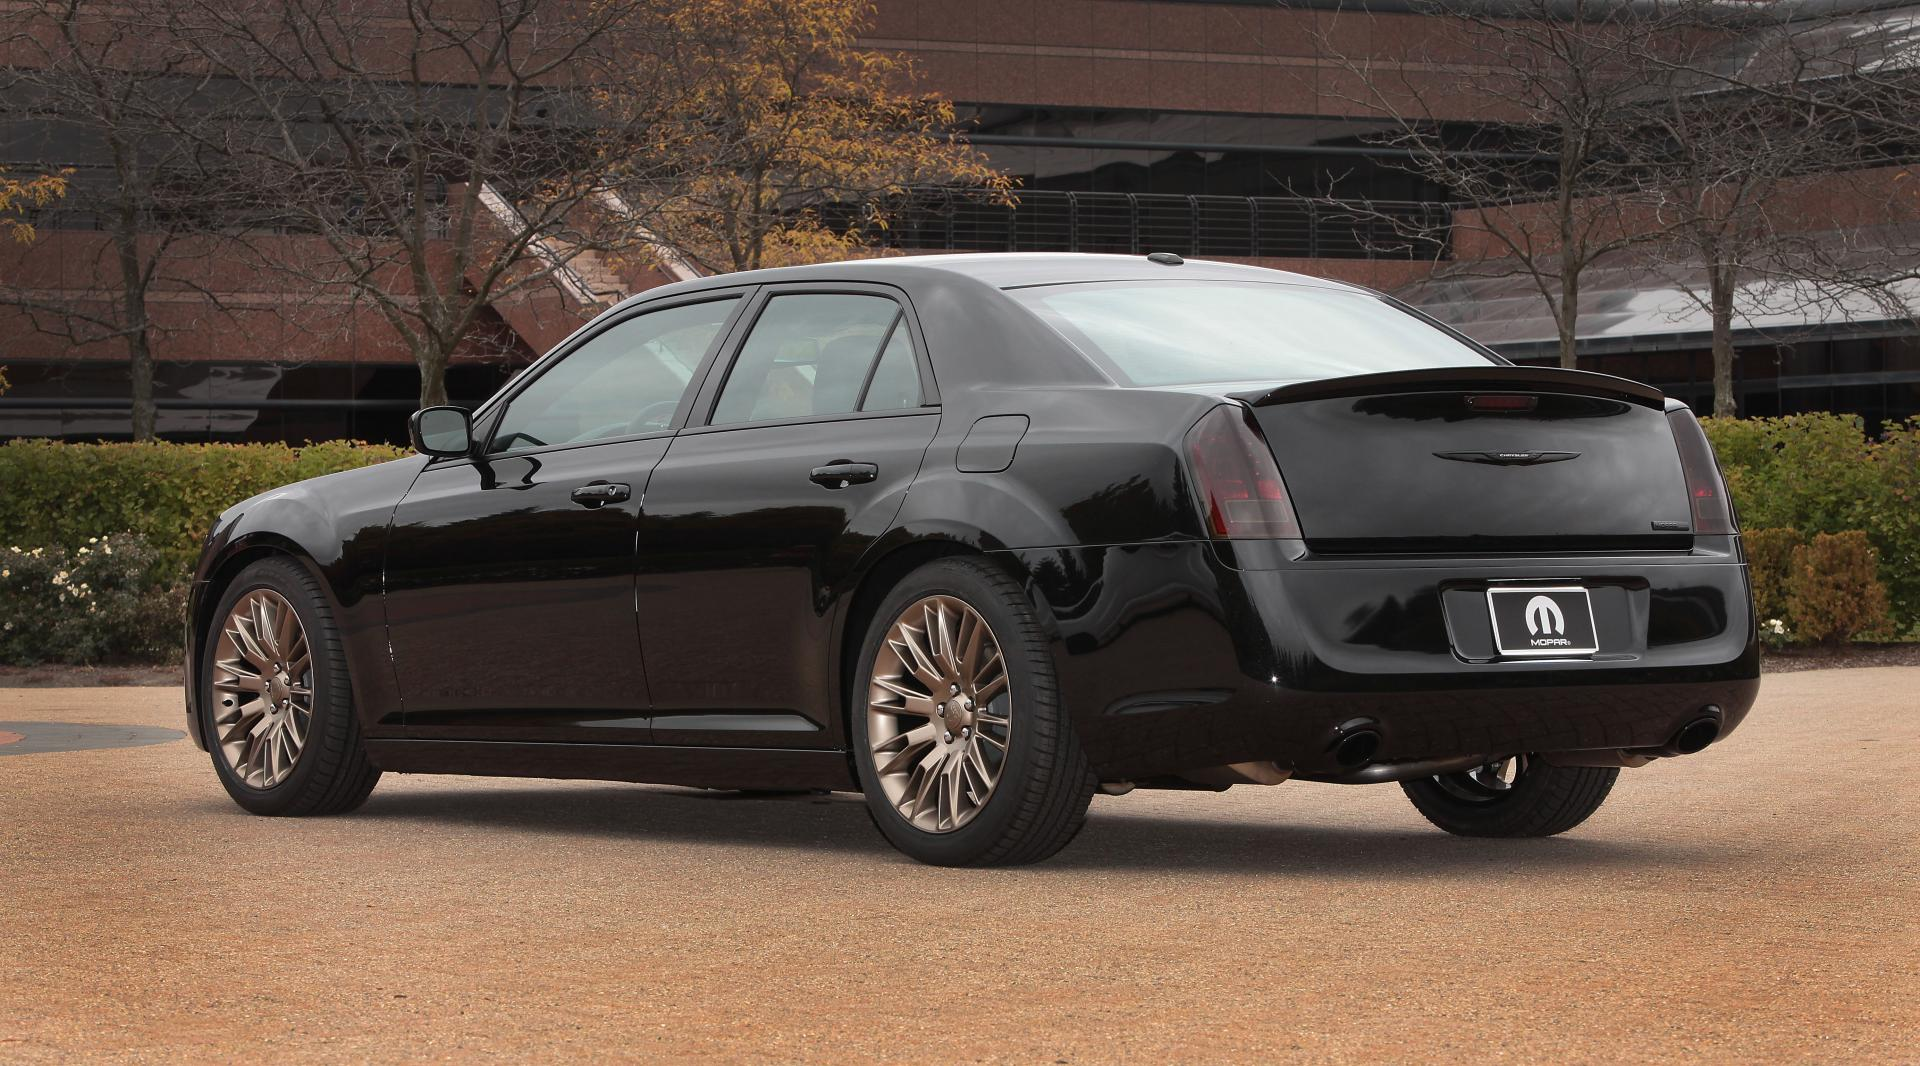 2014 chrysler 300s phantom black. Black Bedroom Furniture Sets. Home Design Ideas